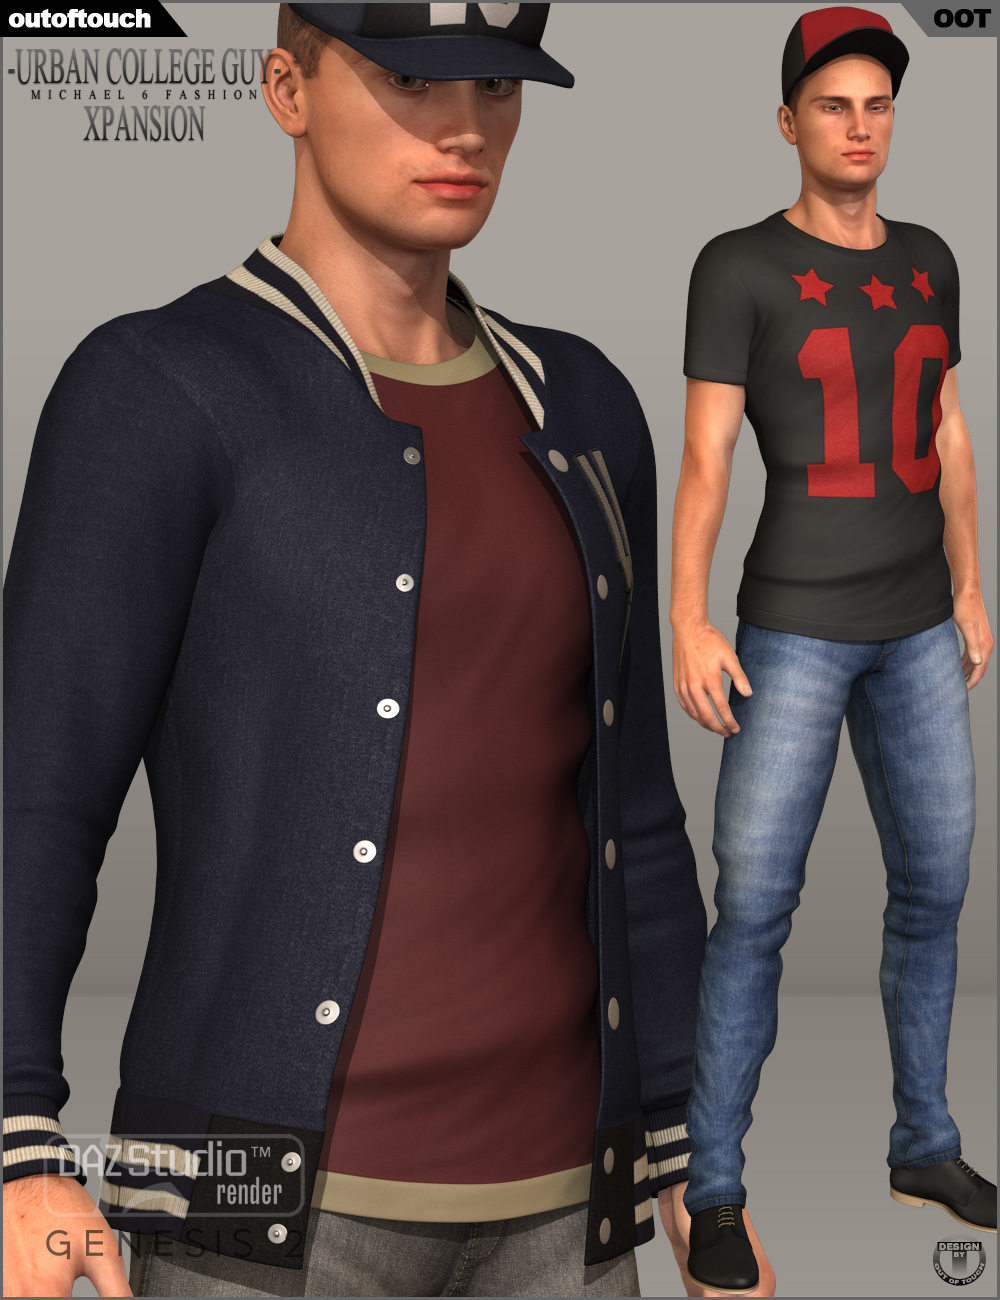 Urban College Guy XPansion by: outoftouch, 3D Models by Daz 3D